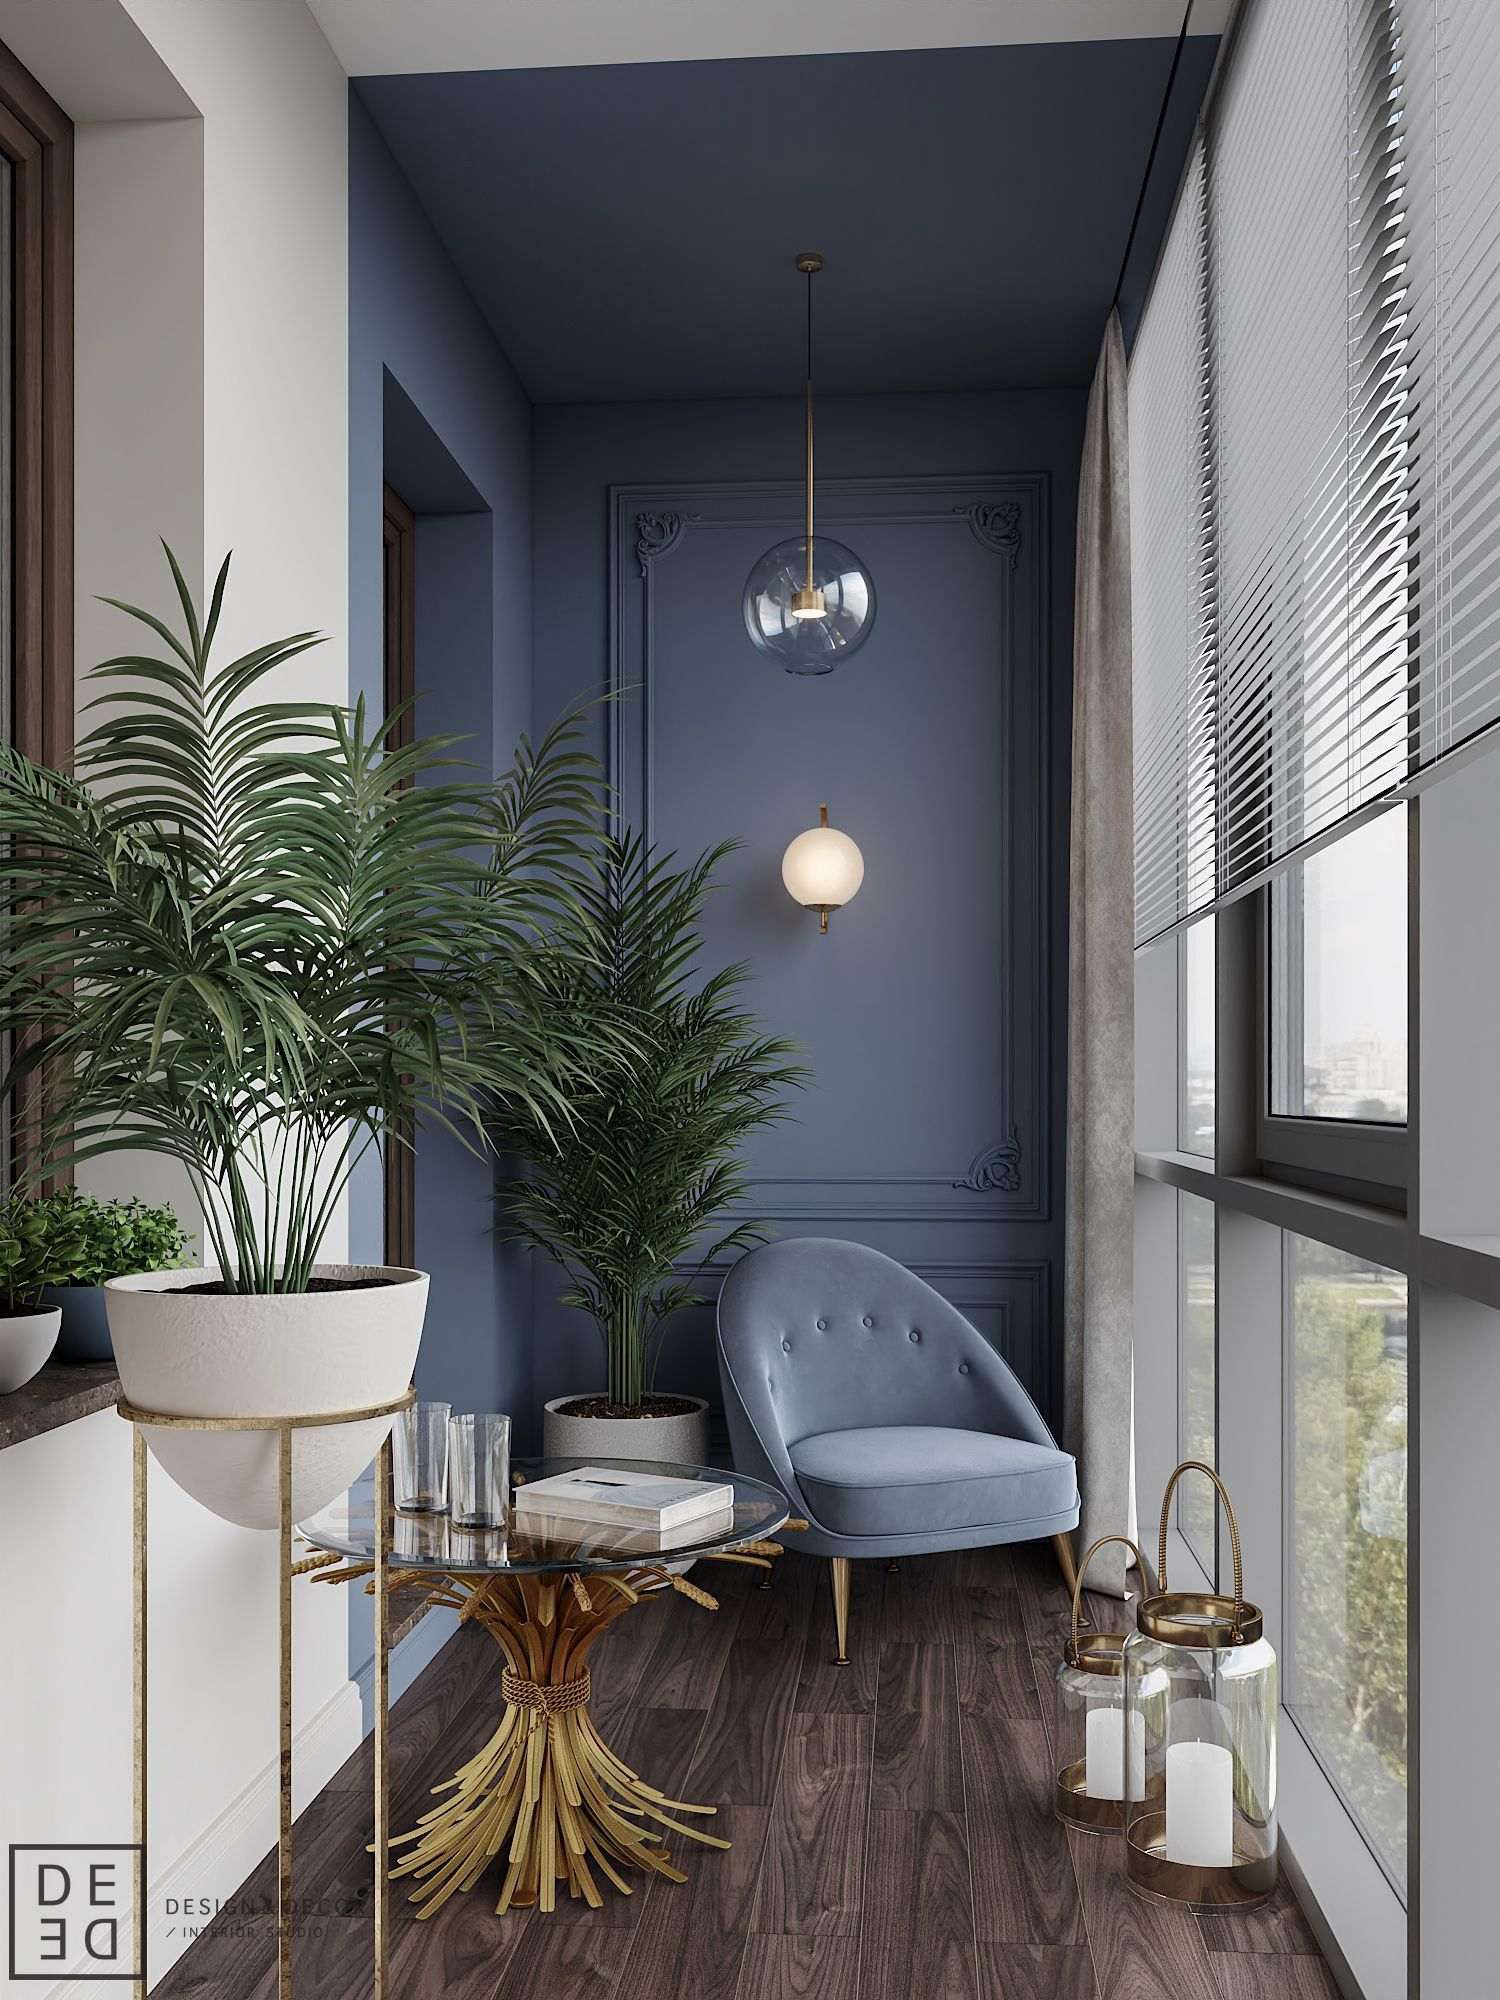 De De Blueberry Flat Apartmentbalconydecorating De De Blueberry Flat On Behance In 2020 Wohnung Mit Balkon Einrichten Design Fur Zuhause Kleines Balkon Dekor